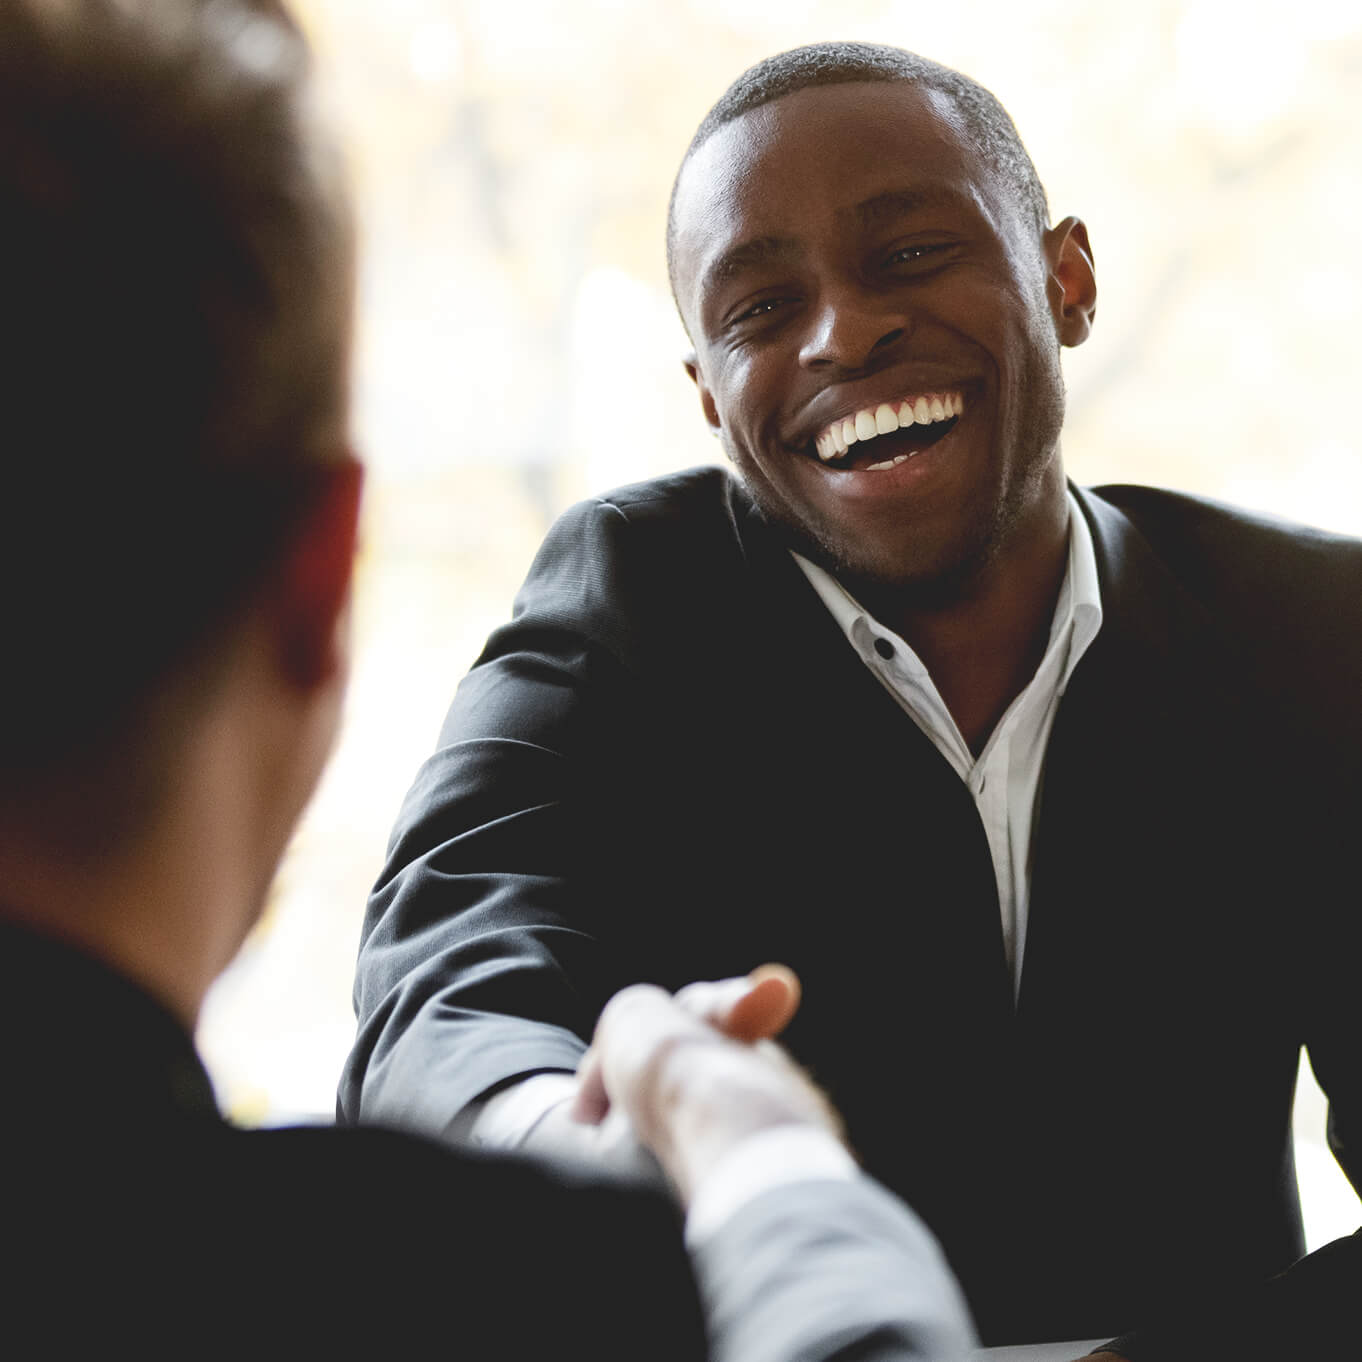 Happy businessman with a big smile, wearing a black suit jacket and shaking hands with another person.